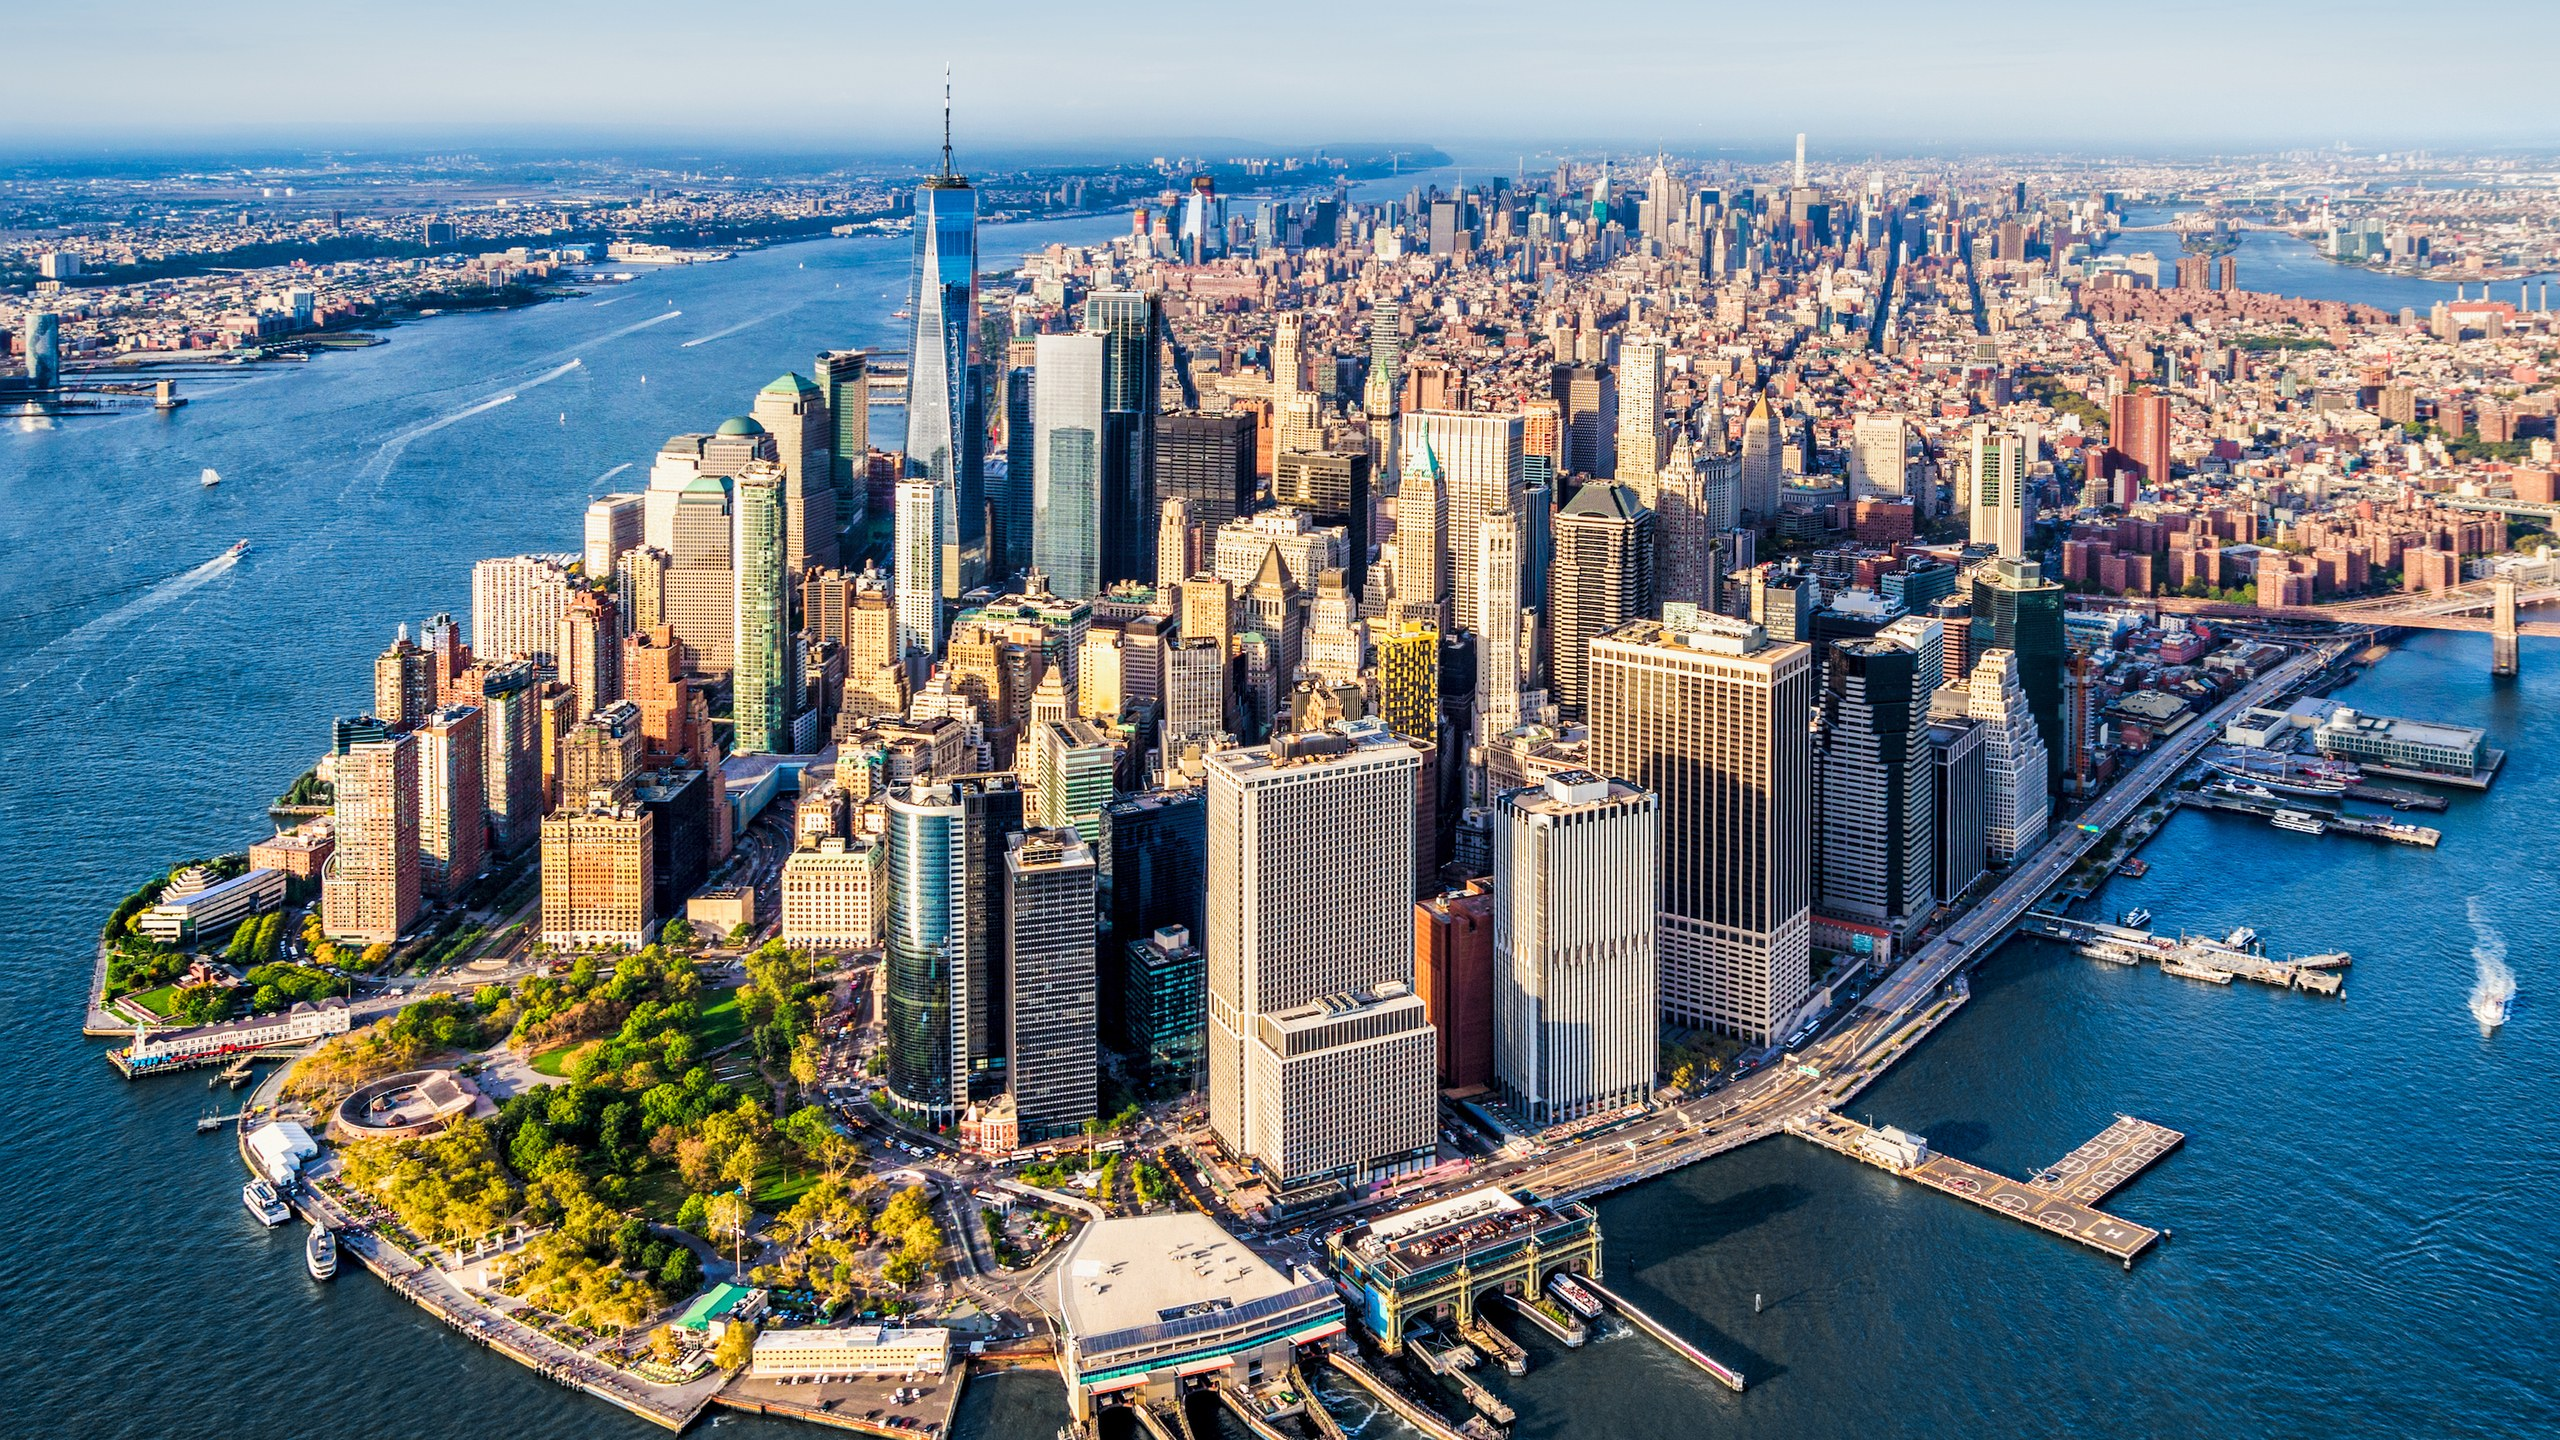 Enjoy Yourself in the Mesmerizing New York City!